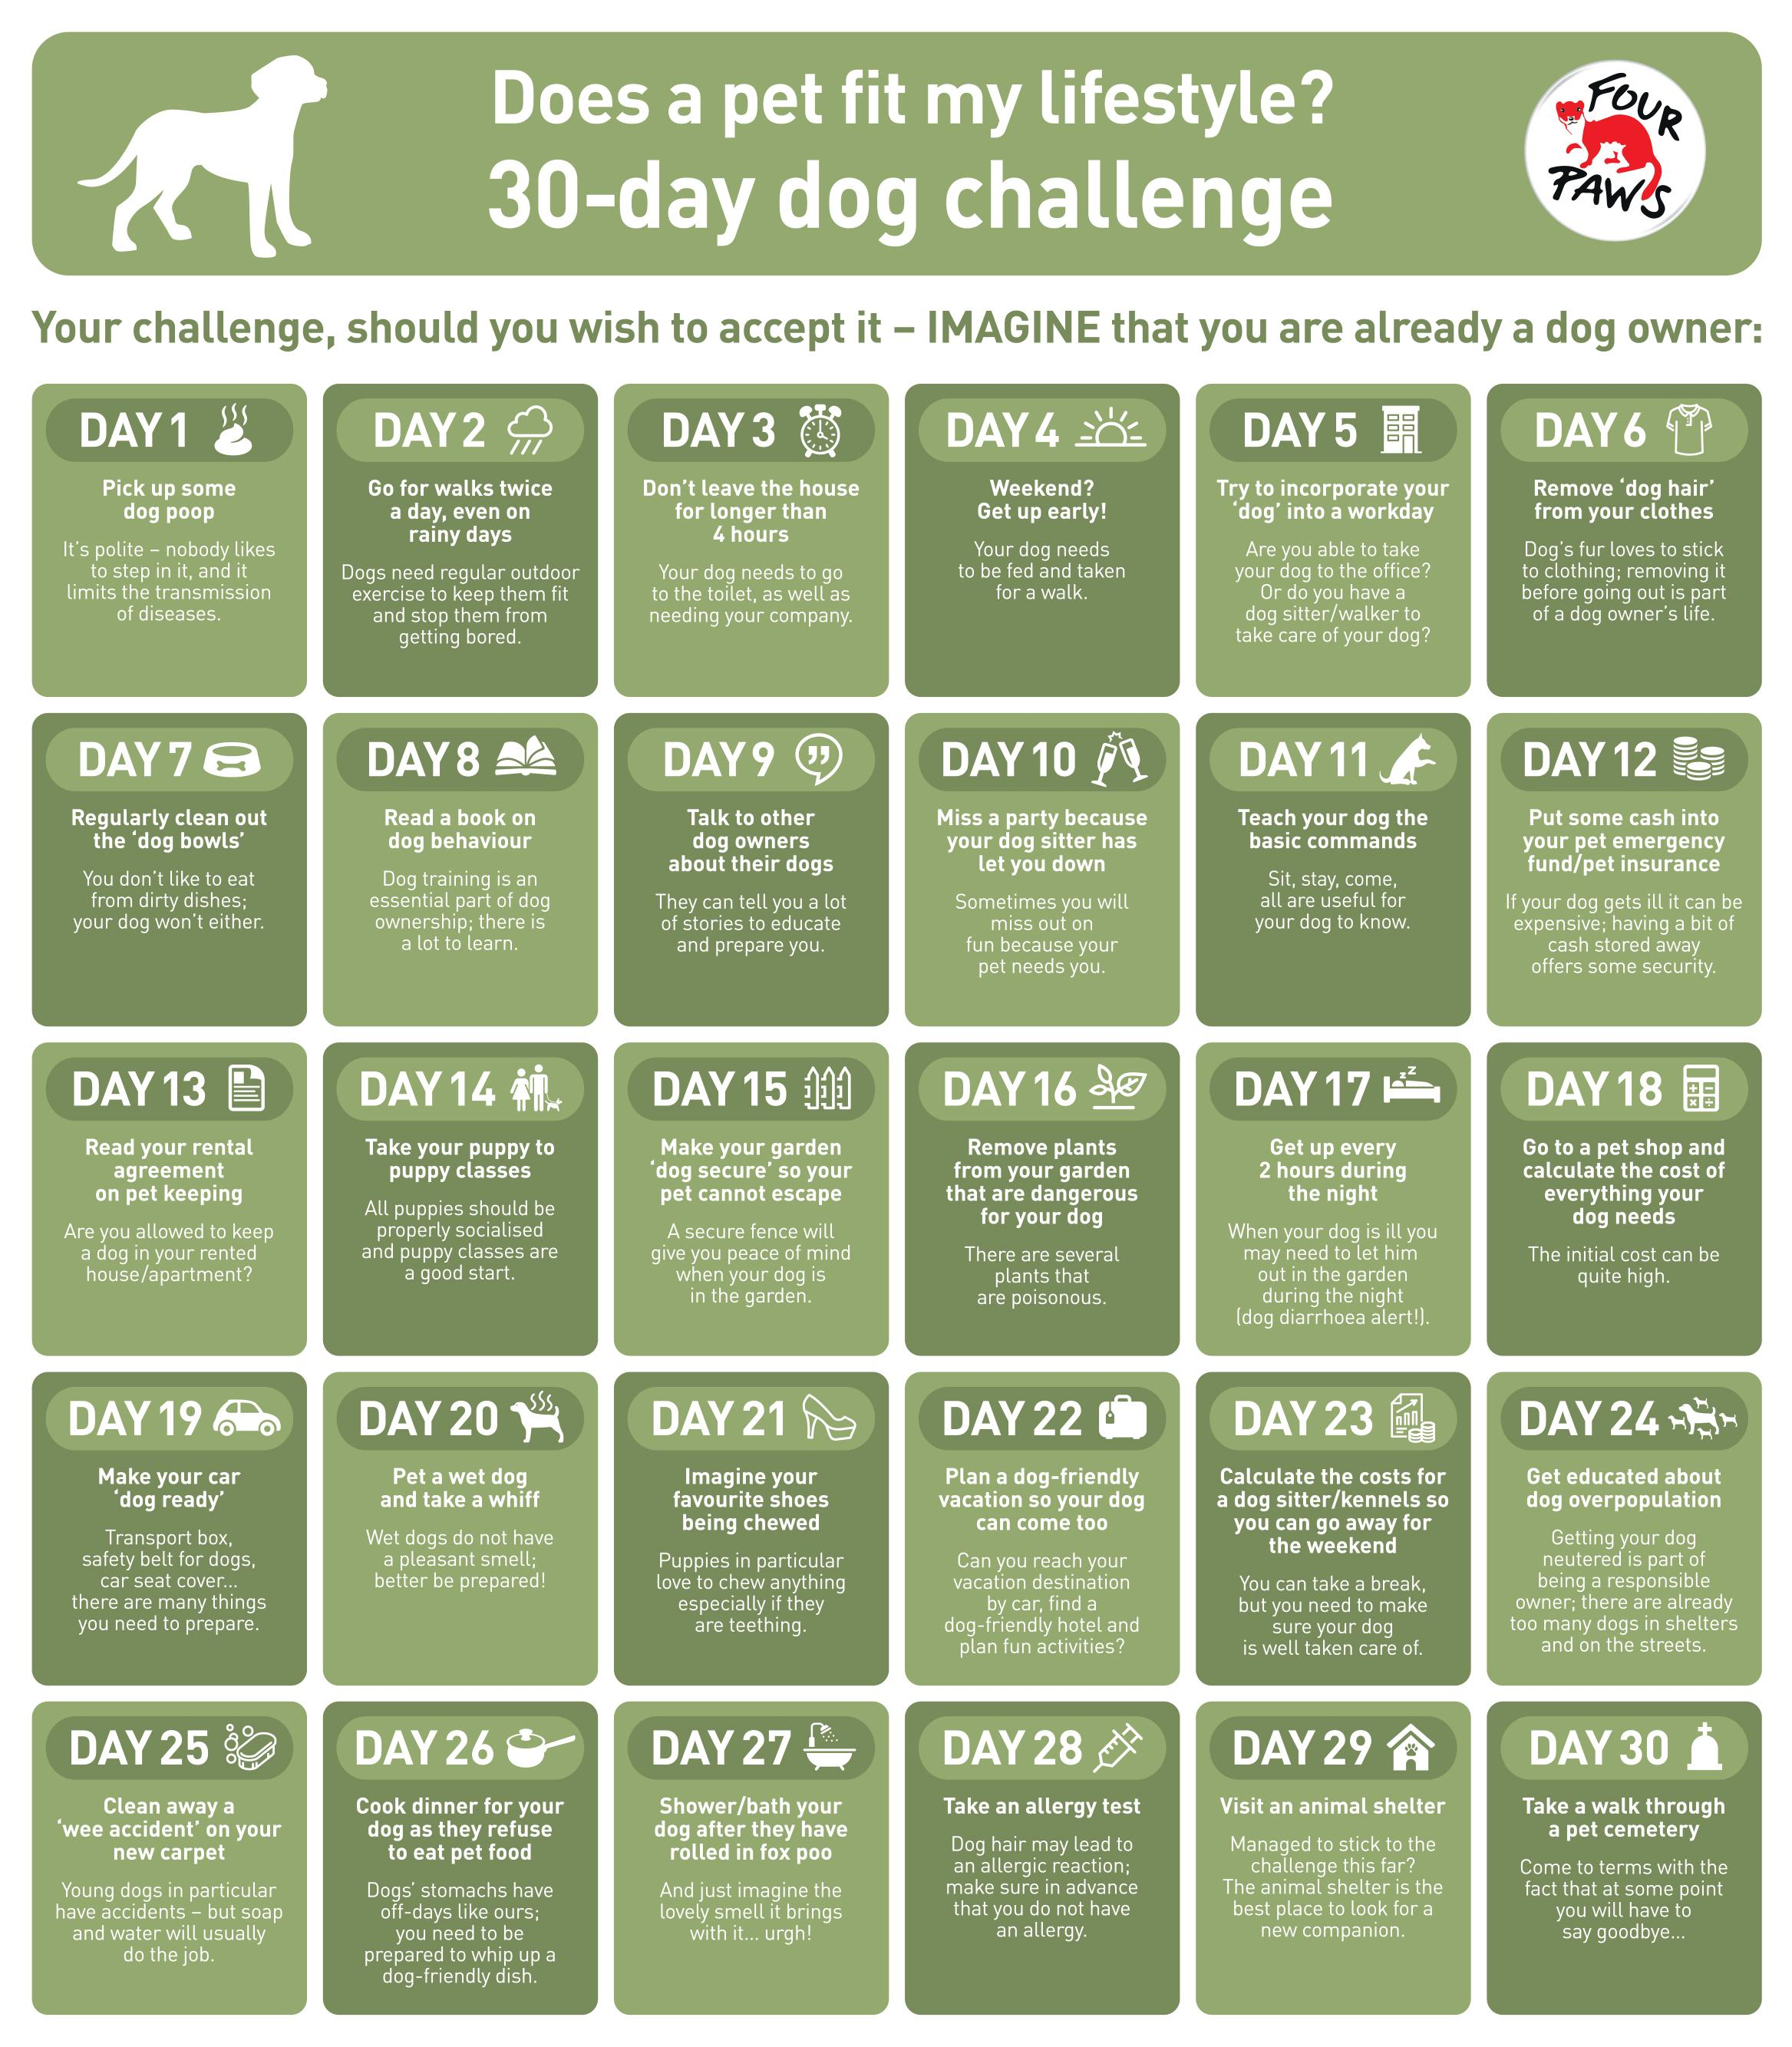 FOUR PAWS 30-day dog challenge